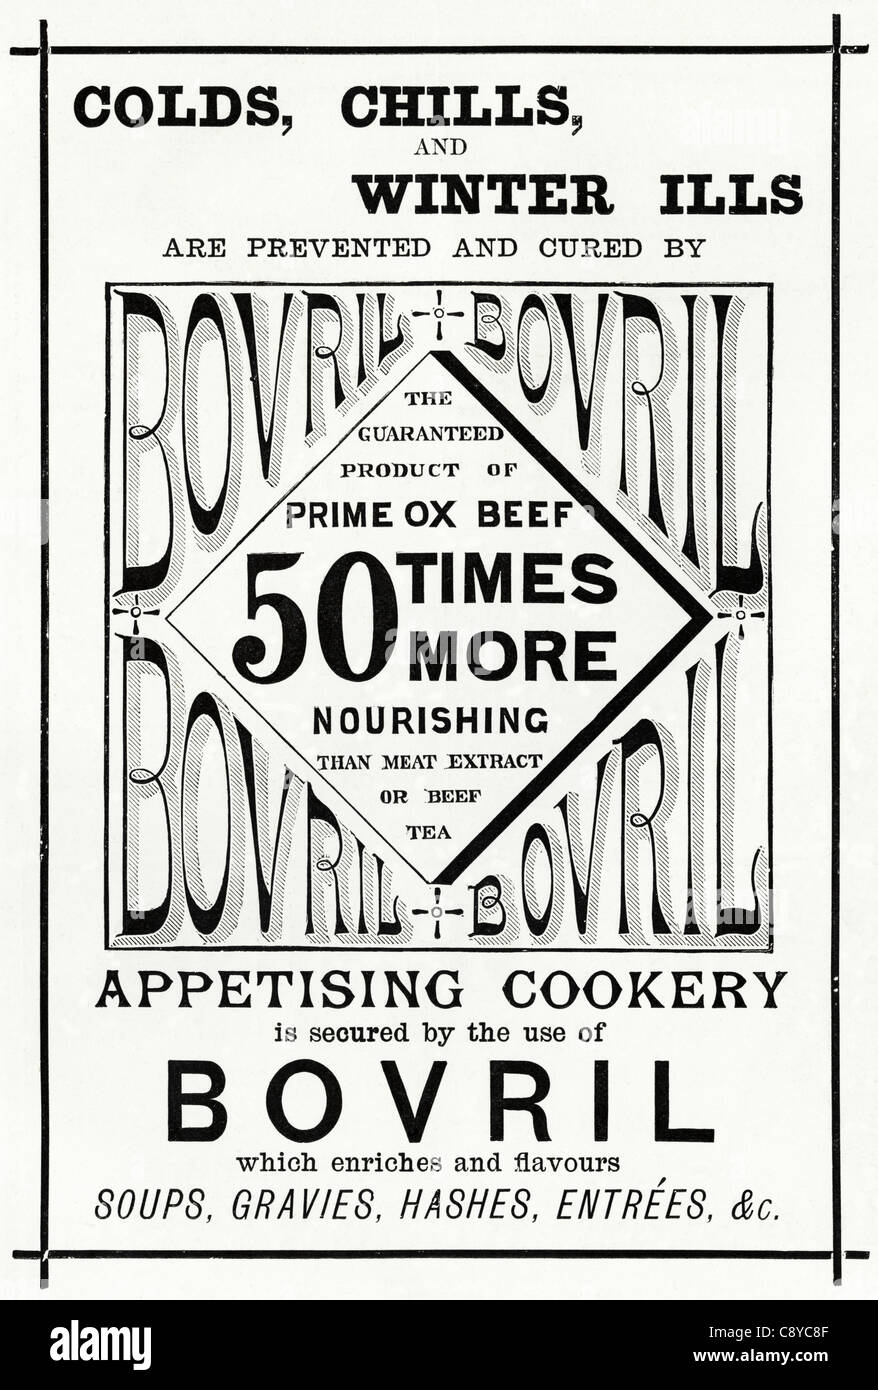 Original Victorian advertisement circa 1892 advertising BOVRIL prime ox beef extract - Stock Image